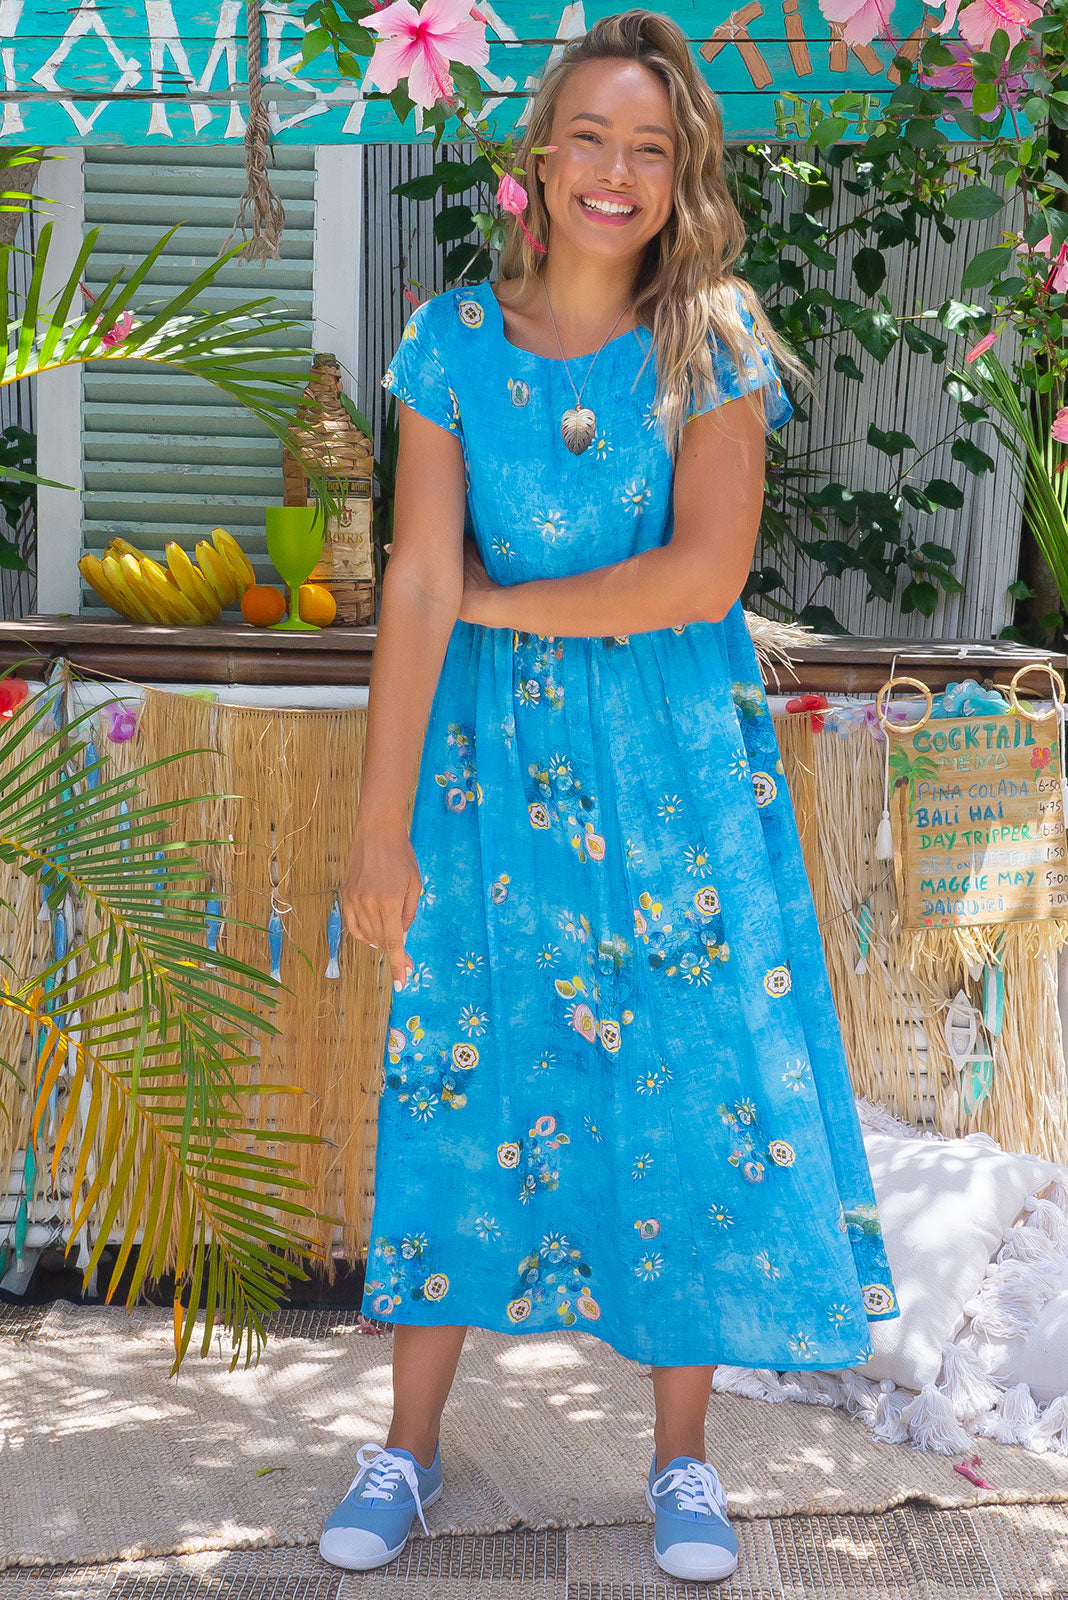 The Cocoloco Clear Water Dress features short sleeves, side pockets and woven 100% cotton in blue base with wash effect and scattered print.